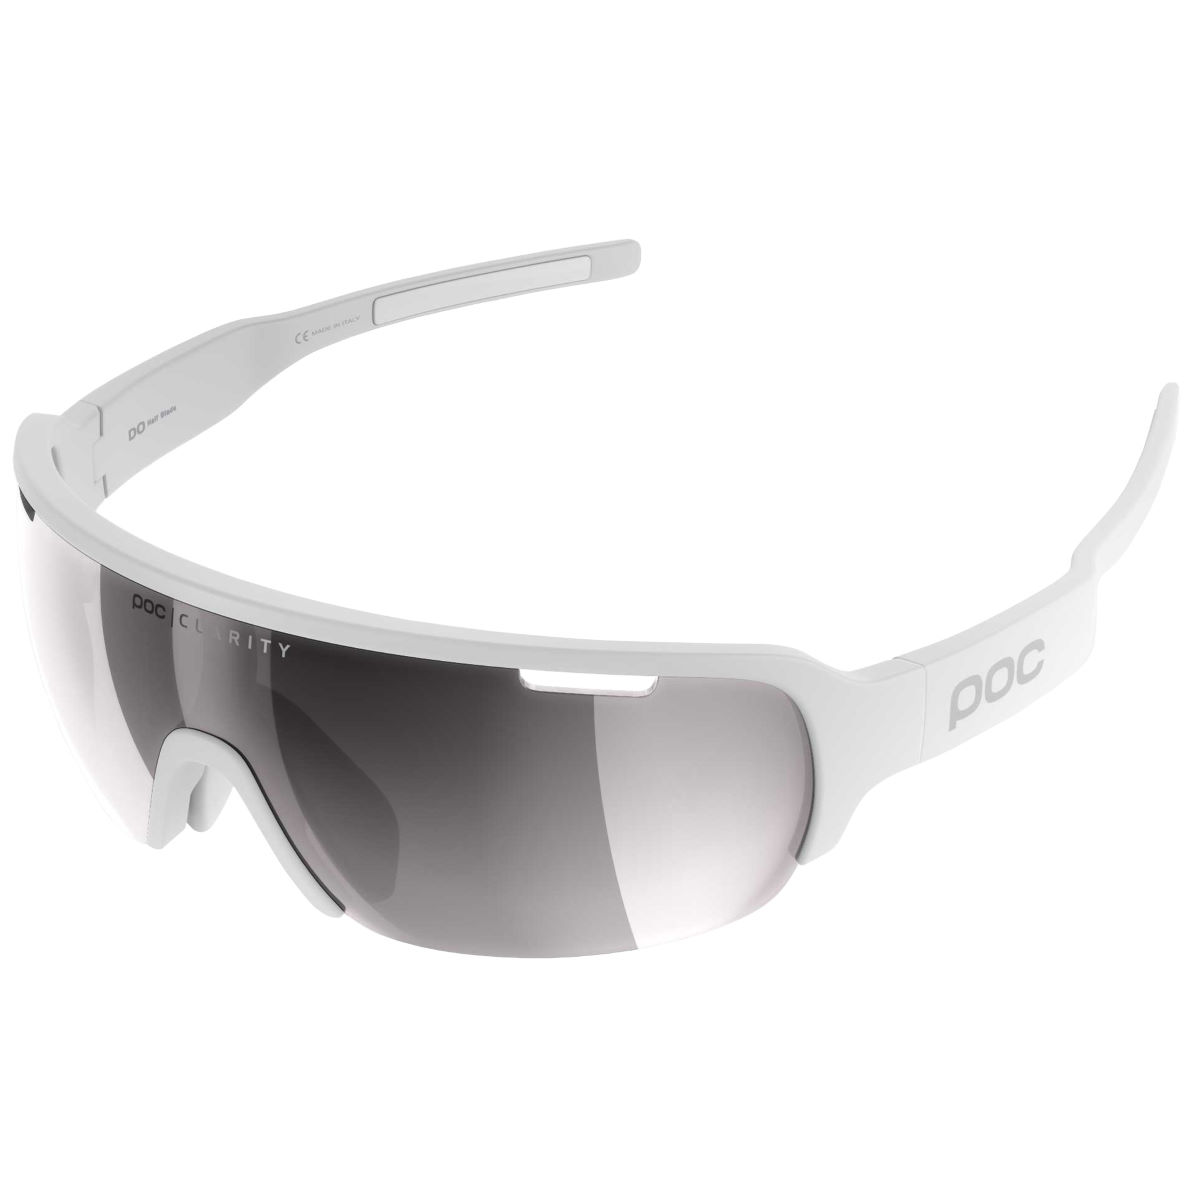 Poc Do Half Blade Clarity Avip Sunglasses - One Size White/silver